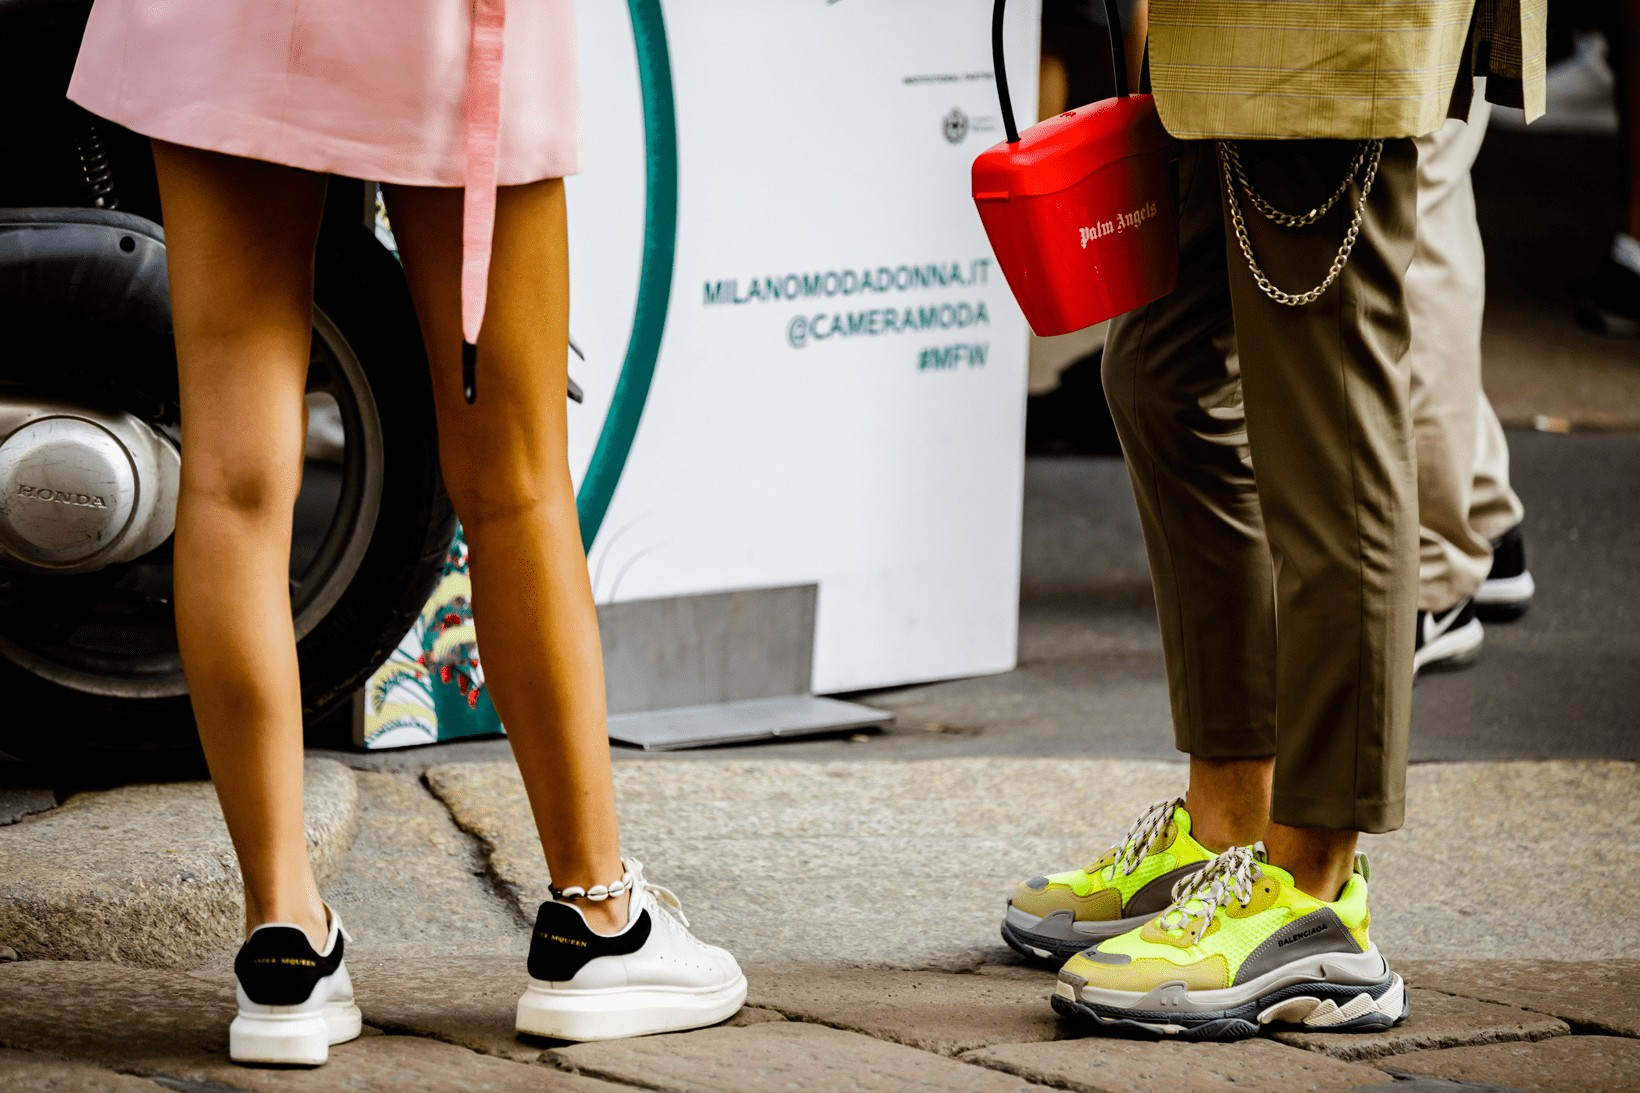 Ranked As Top-Searched Sneaker Brand